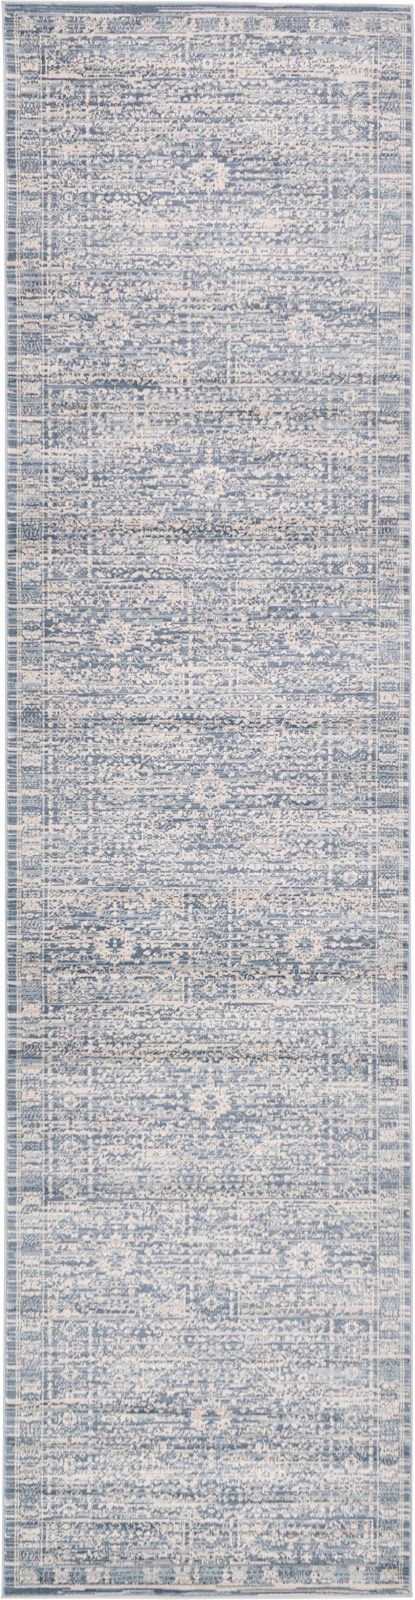 unique loom paris transitional area rug collection